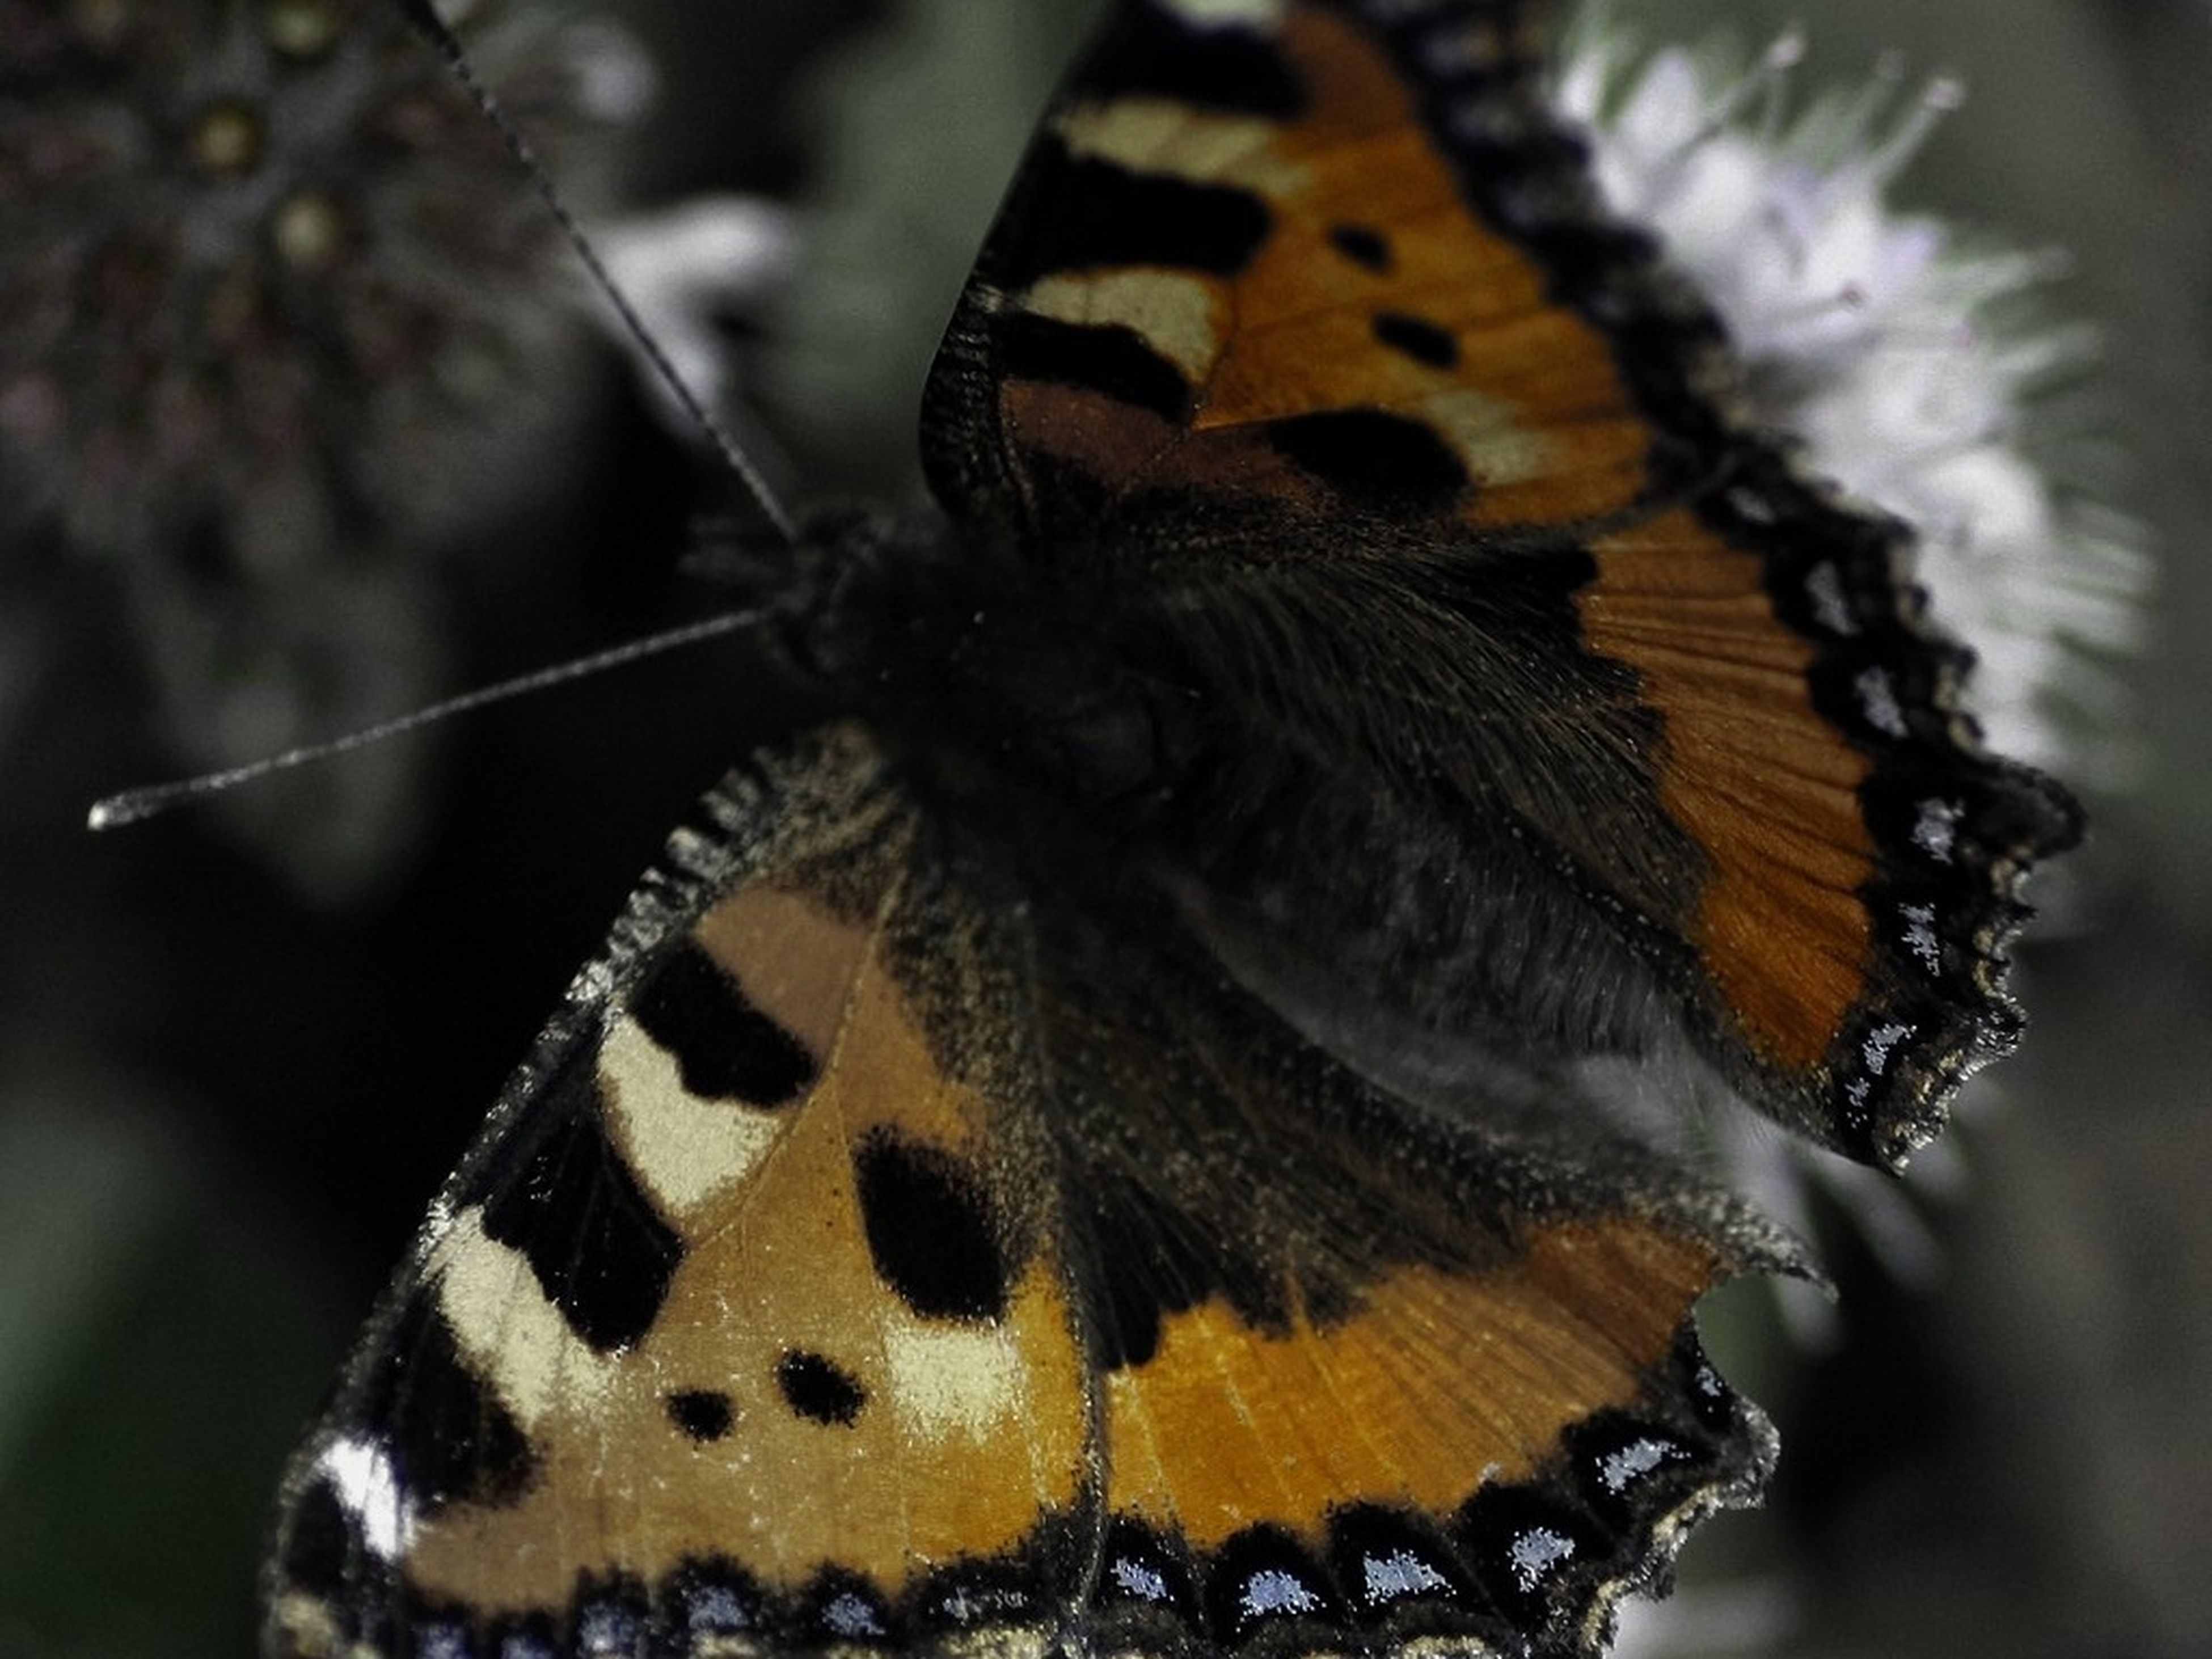 animals in the wild, animal themes, one animal, insect, wildlife, animal markings, focus on foreground, butterfly - insect, close-up, natural pattern, butterfly, nature, beauty in nature, animal wing, day, outdoors, fragility, selective focus, animal antenna, perching